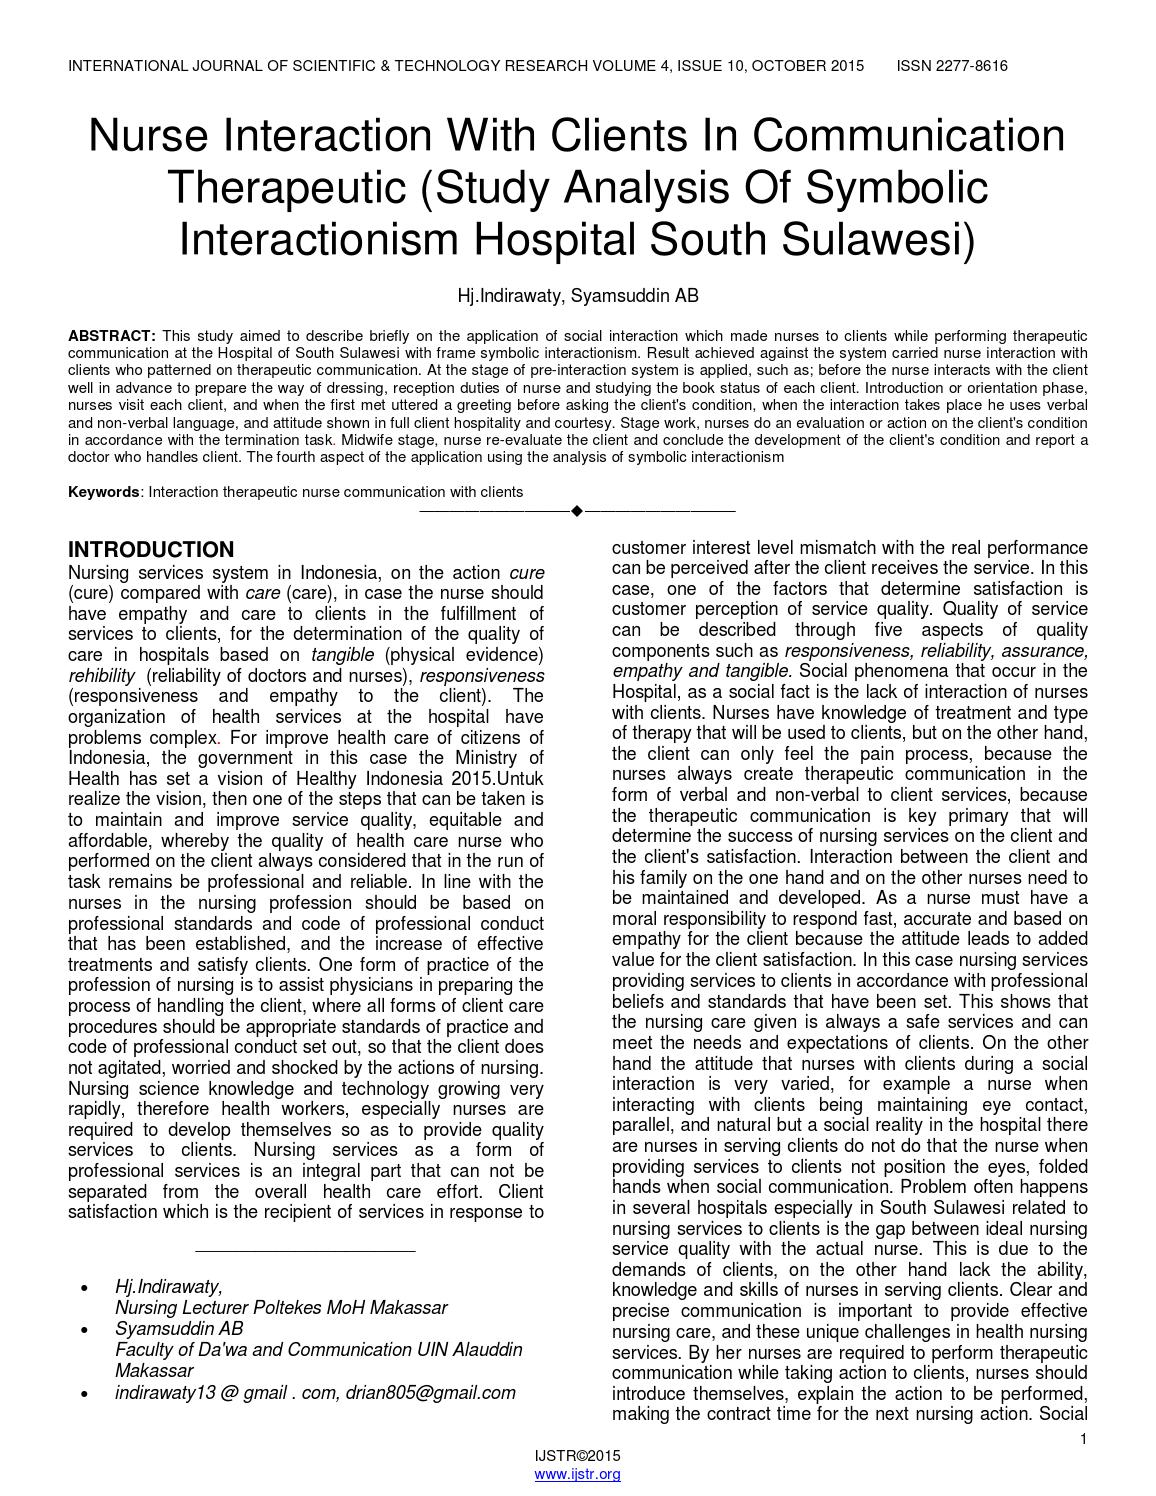 Nurse interaction with clients in communication therapeutic study nurse interaction with clients in communication therapeutic study analysis of symbolic interactionis by ijstr research publications issuu buycottarizona